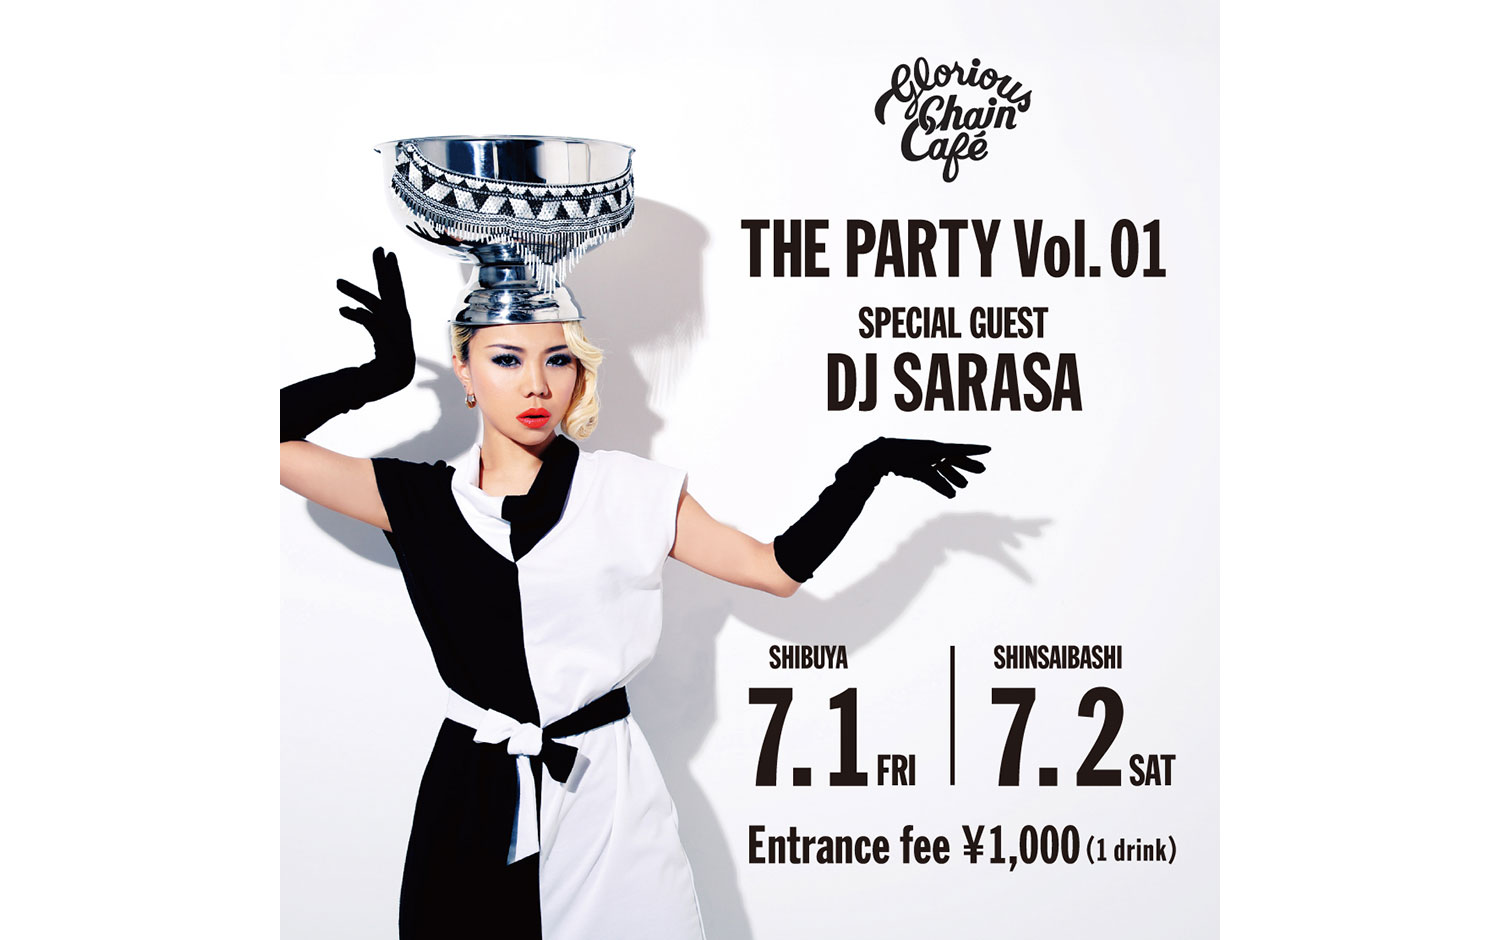 gcc_the_party_vol1_djsarasa_